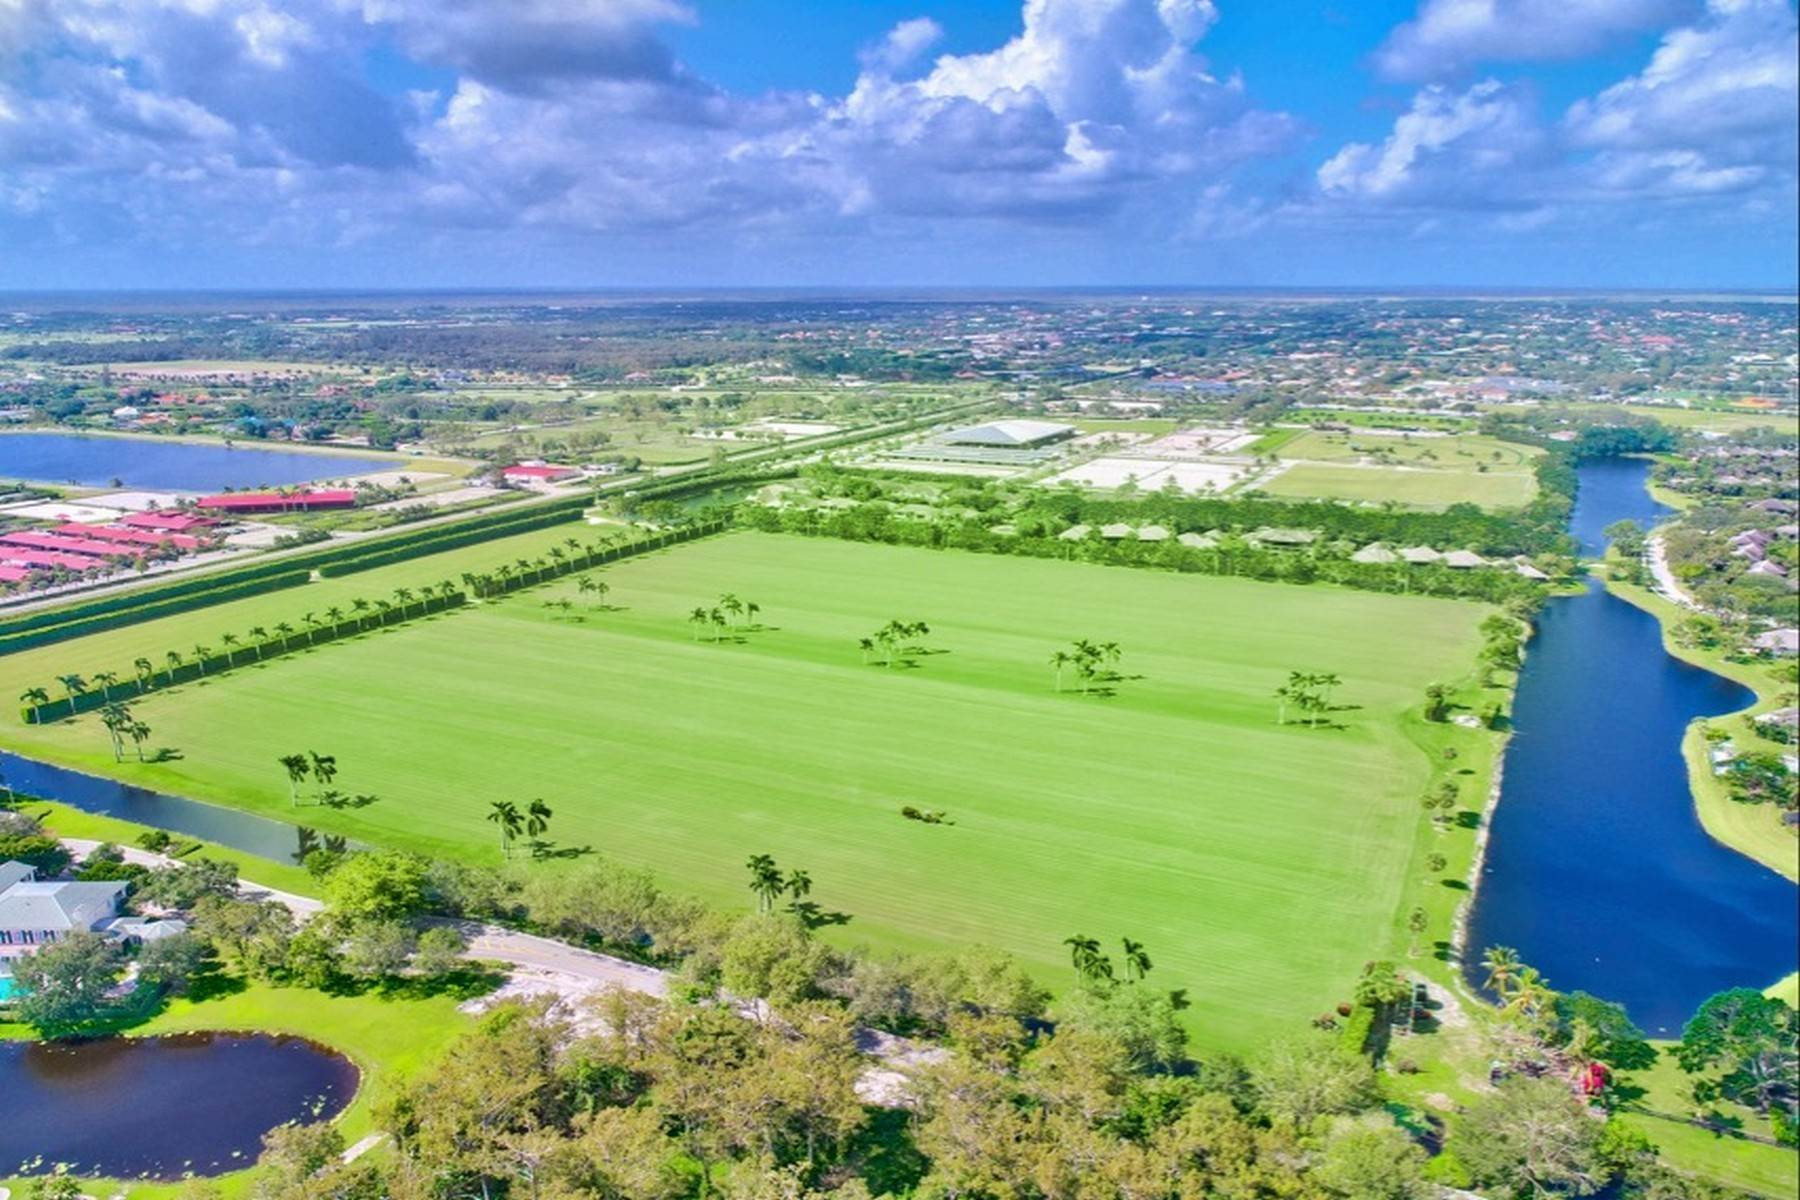 Terreno por un Venta en 13488 S Shore Blvd Wellington, Florida 33414 Estados Unidos